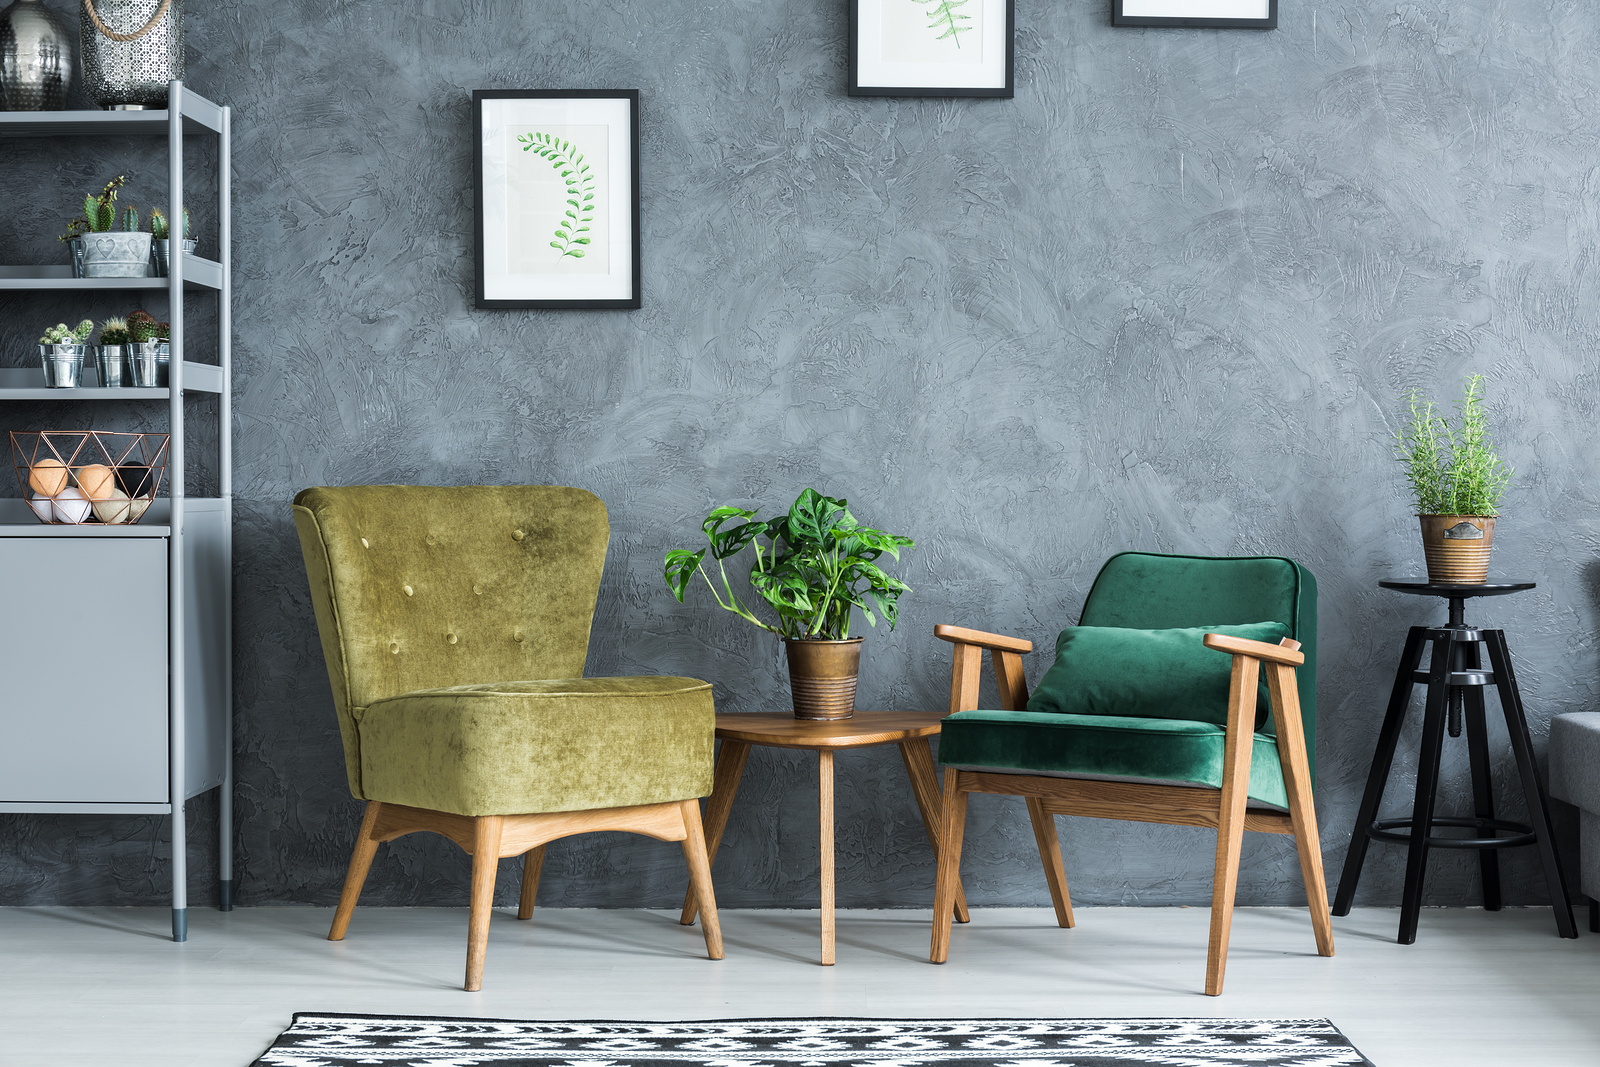 How to choose the right furnishings for a remodel solutioingenieria Gallery